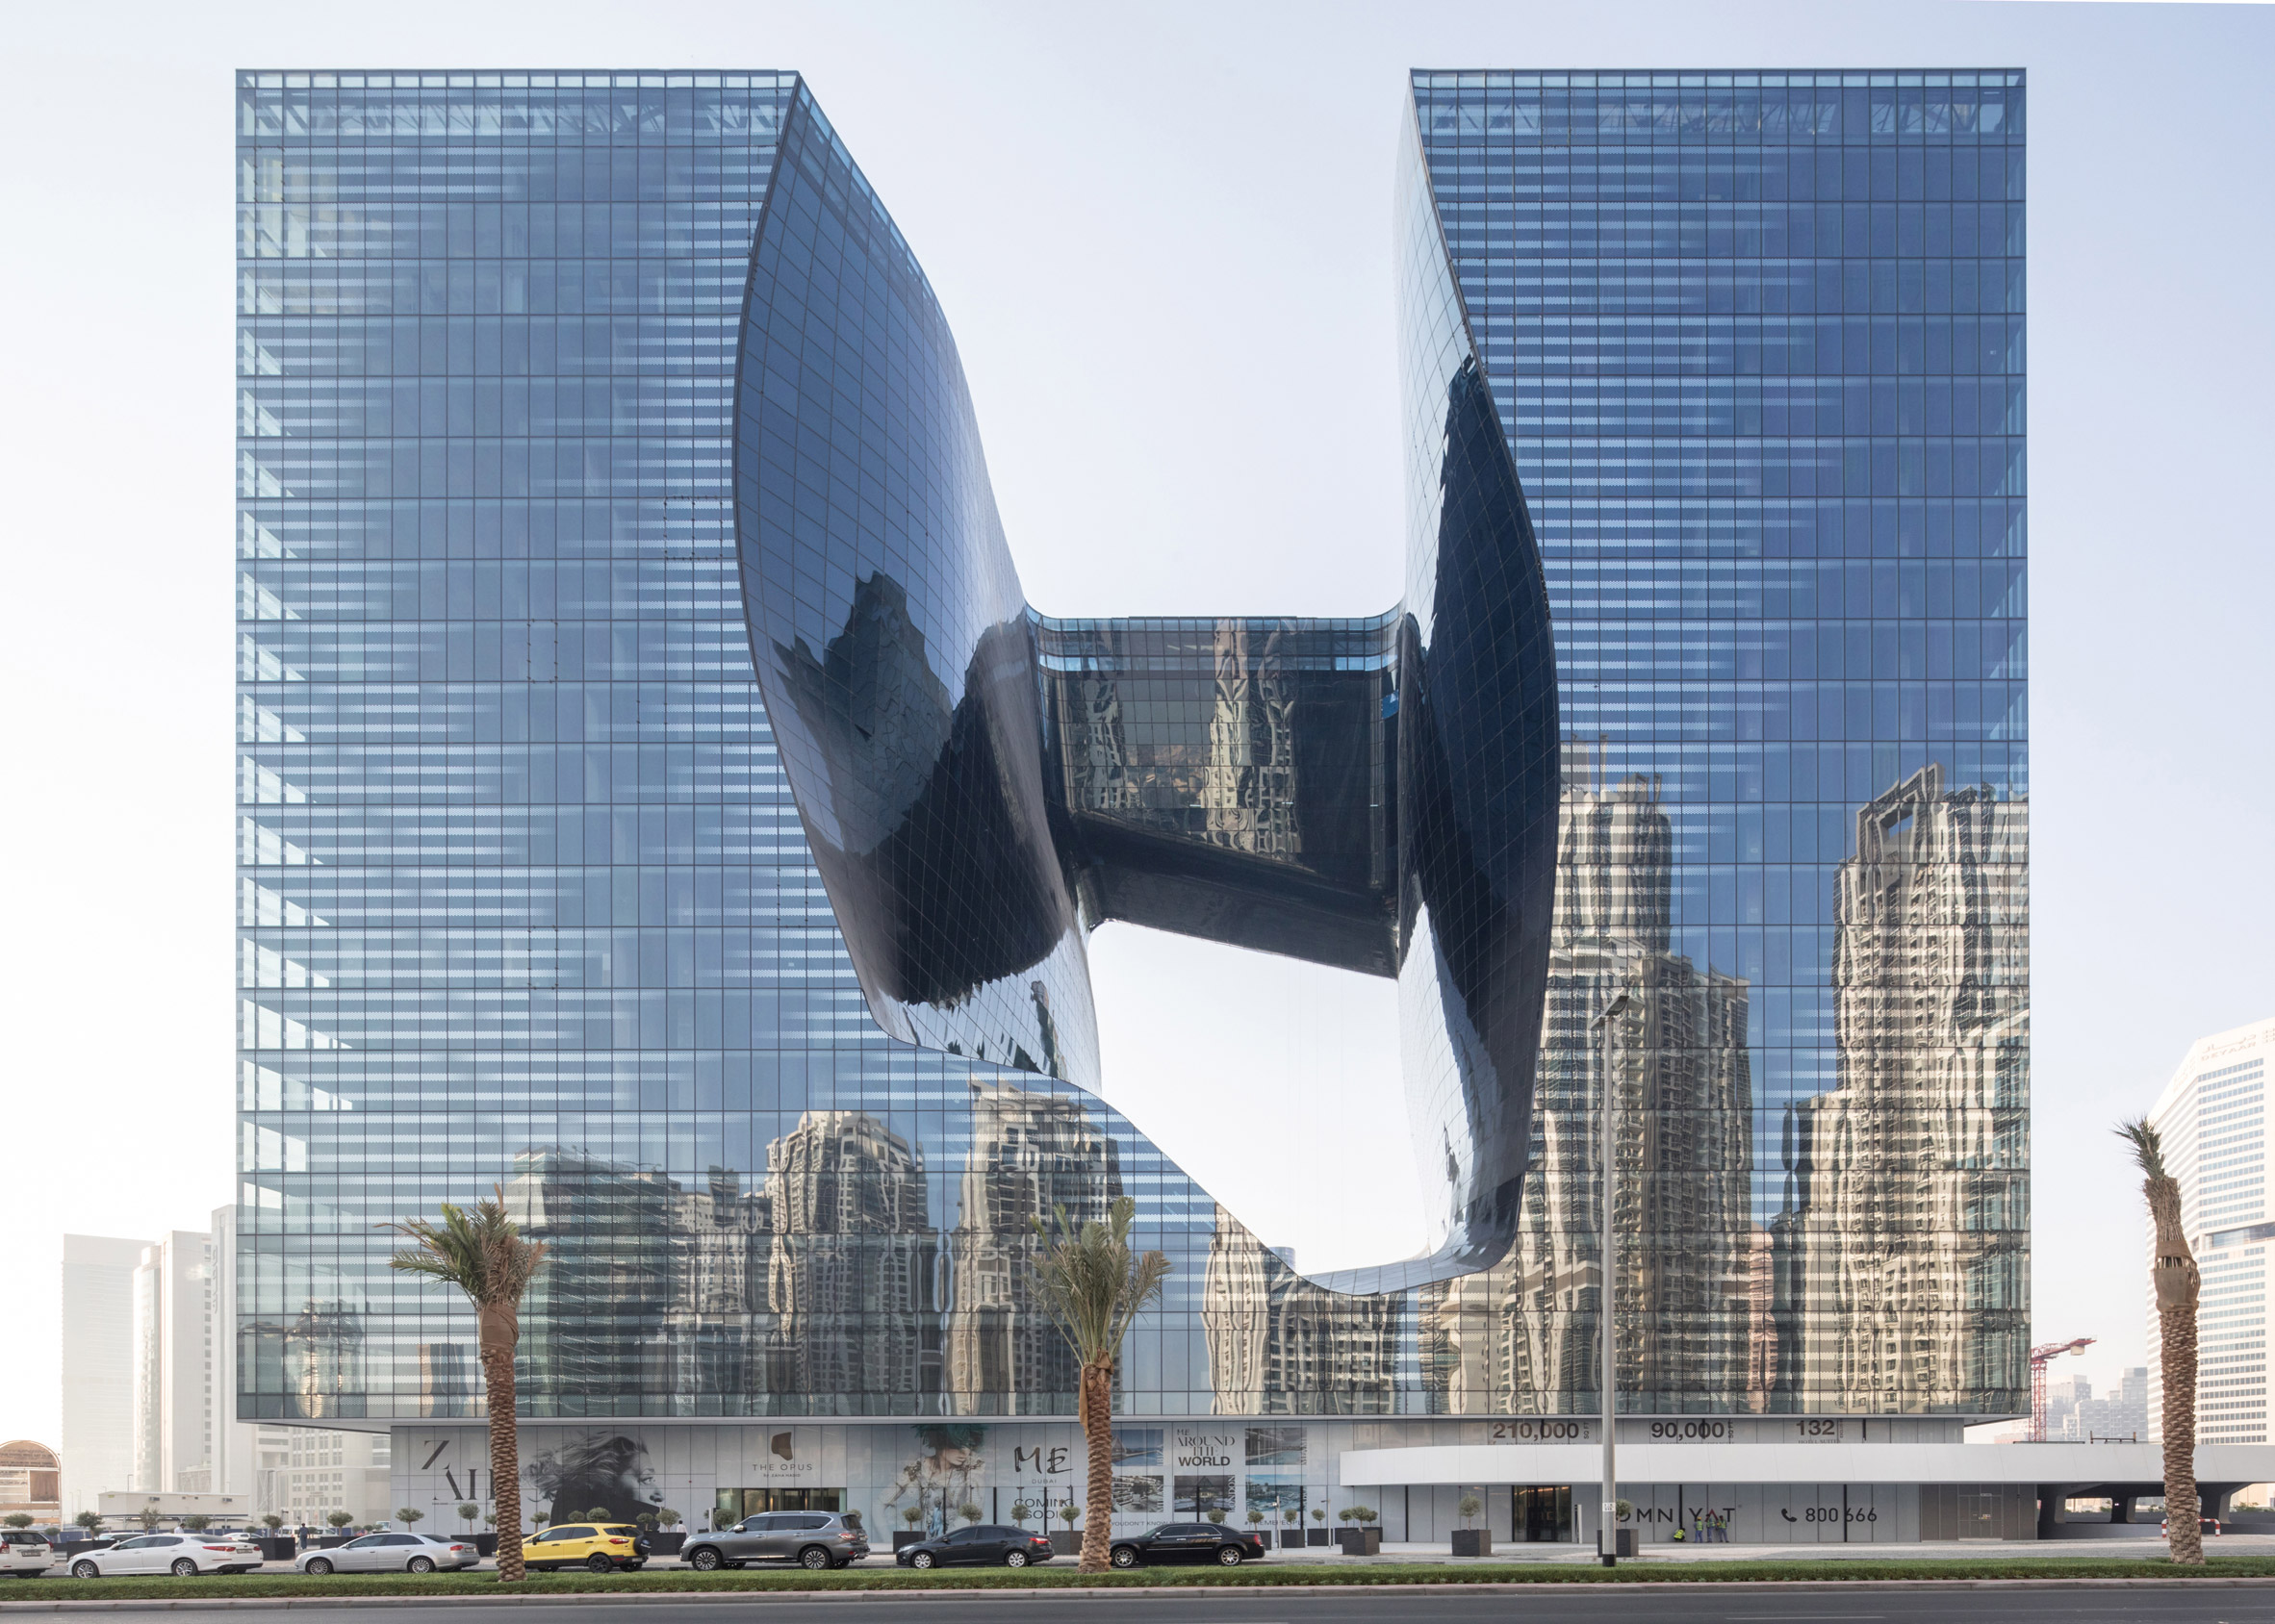 opus-dubai-zaha-hadid-architects-zha-architecture-hotel-photo-laurian-ghinitoiu_dezeen_2364_col_5